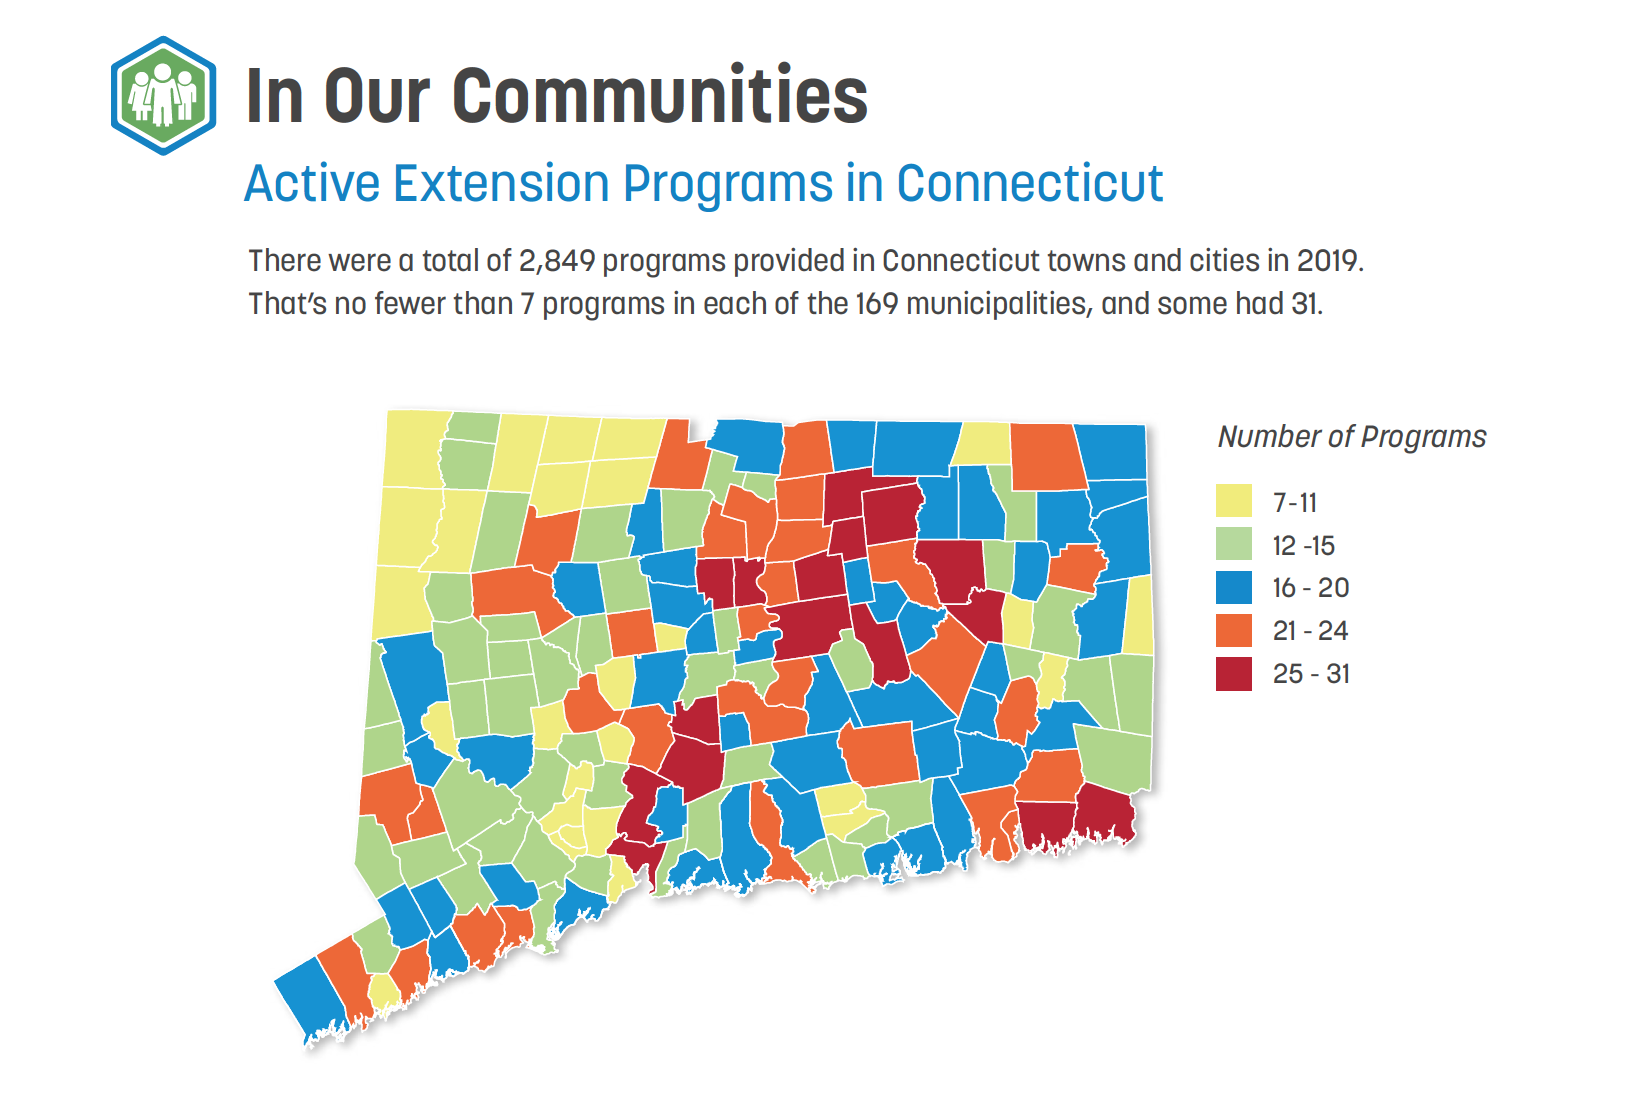 map of UConn Extension program in Connecticut communities using 2019 data